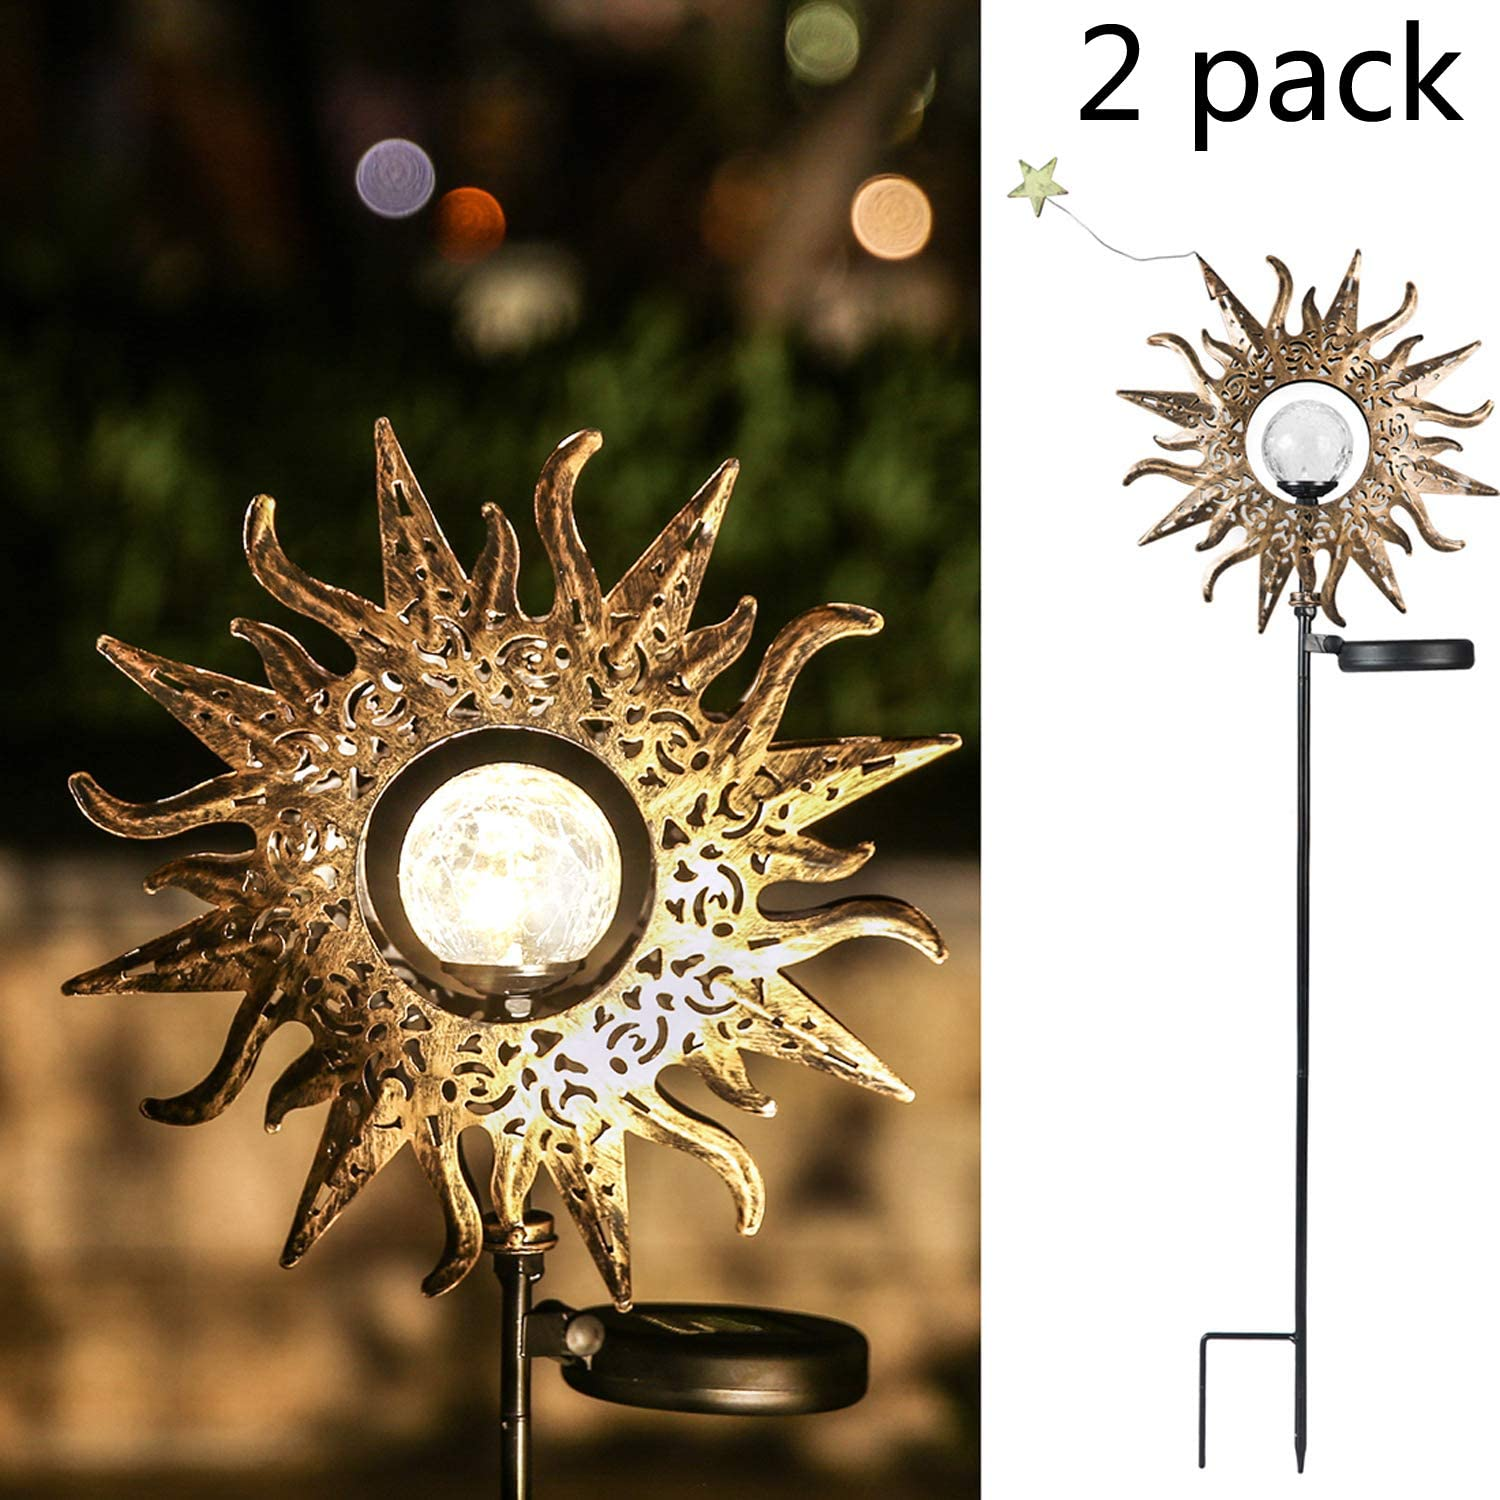 Sun Solar Lights Outdoor Garden - 2 Pack Waterproof Metal Decorative Stakes Lights for Lawn,Patio,Pathway,Yard (2 Pack)